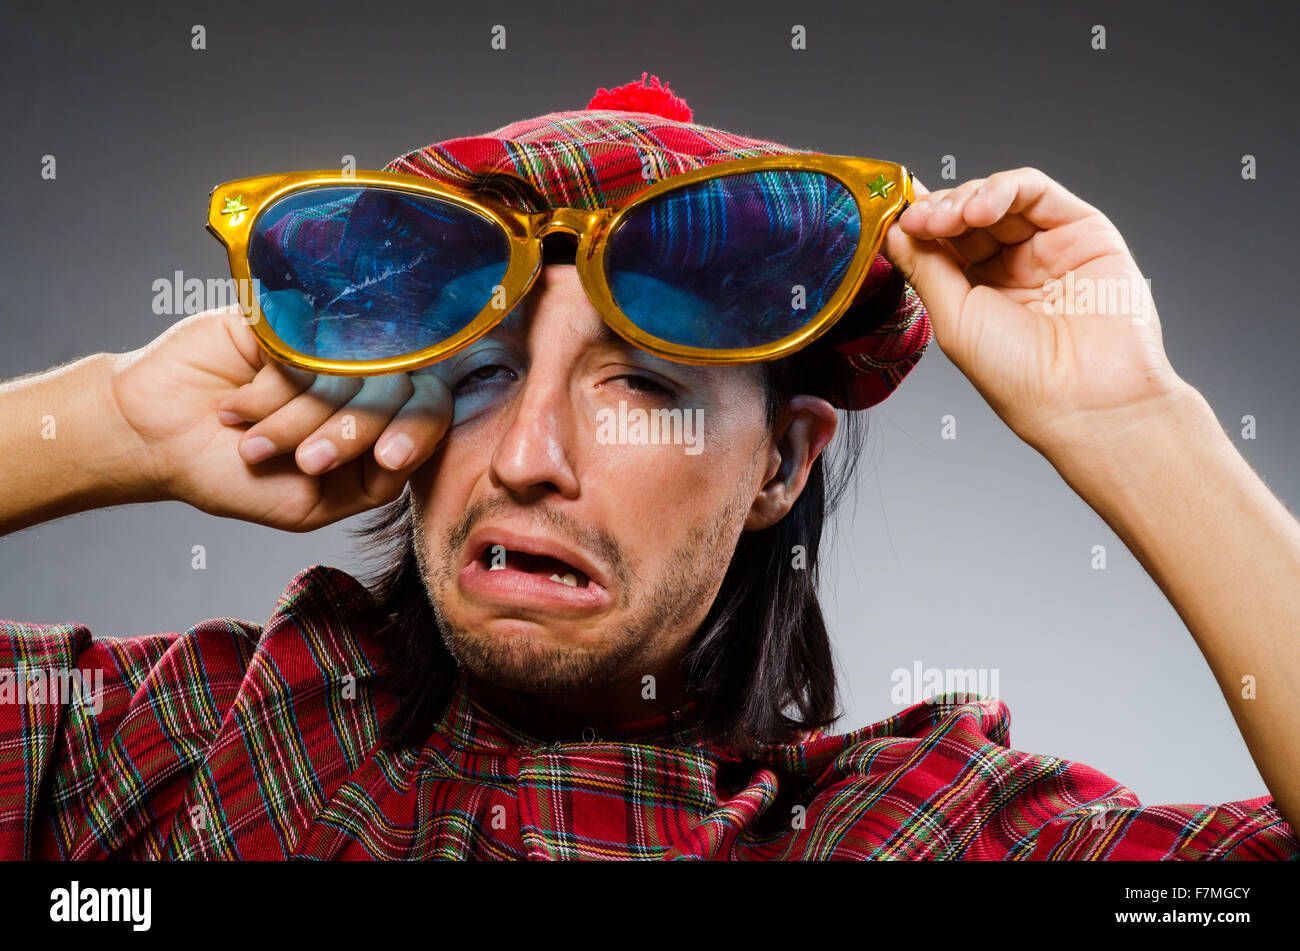 Funny scotsman in traditional clothing - Stock Image